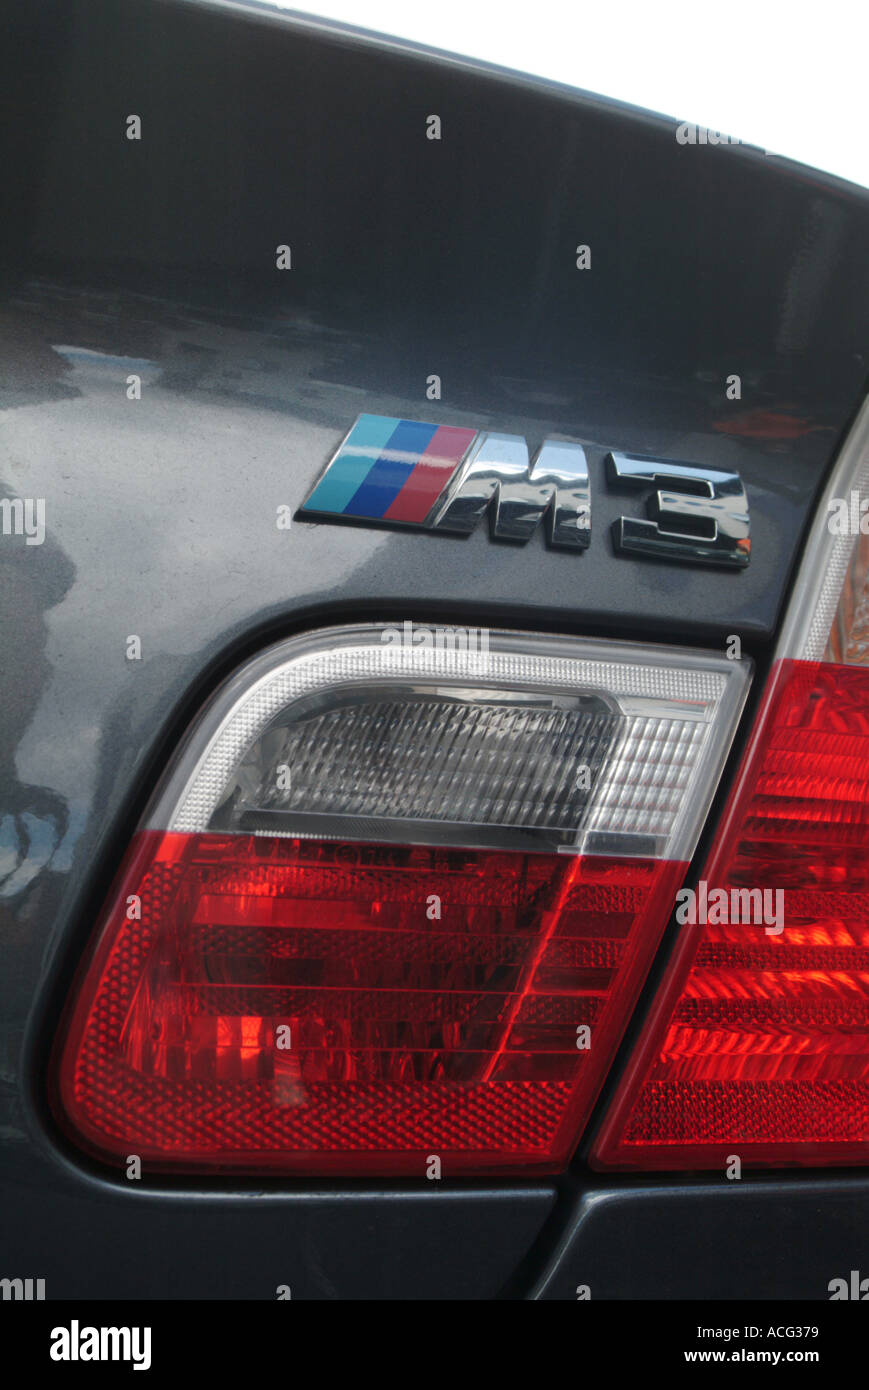 BMW M3 Rear Quarterlight   Stock Image